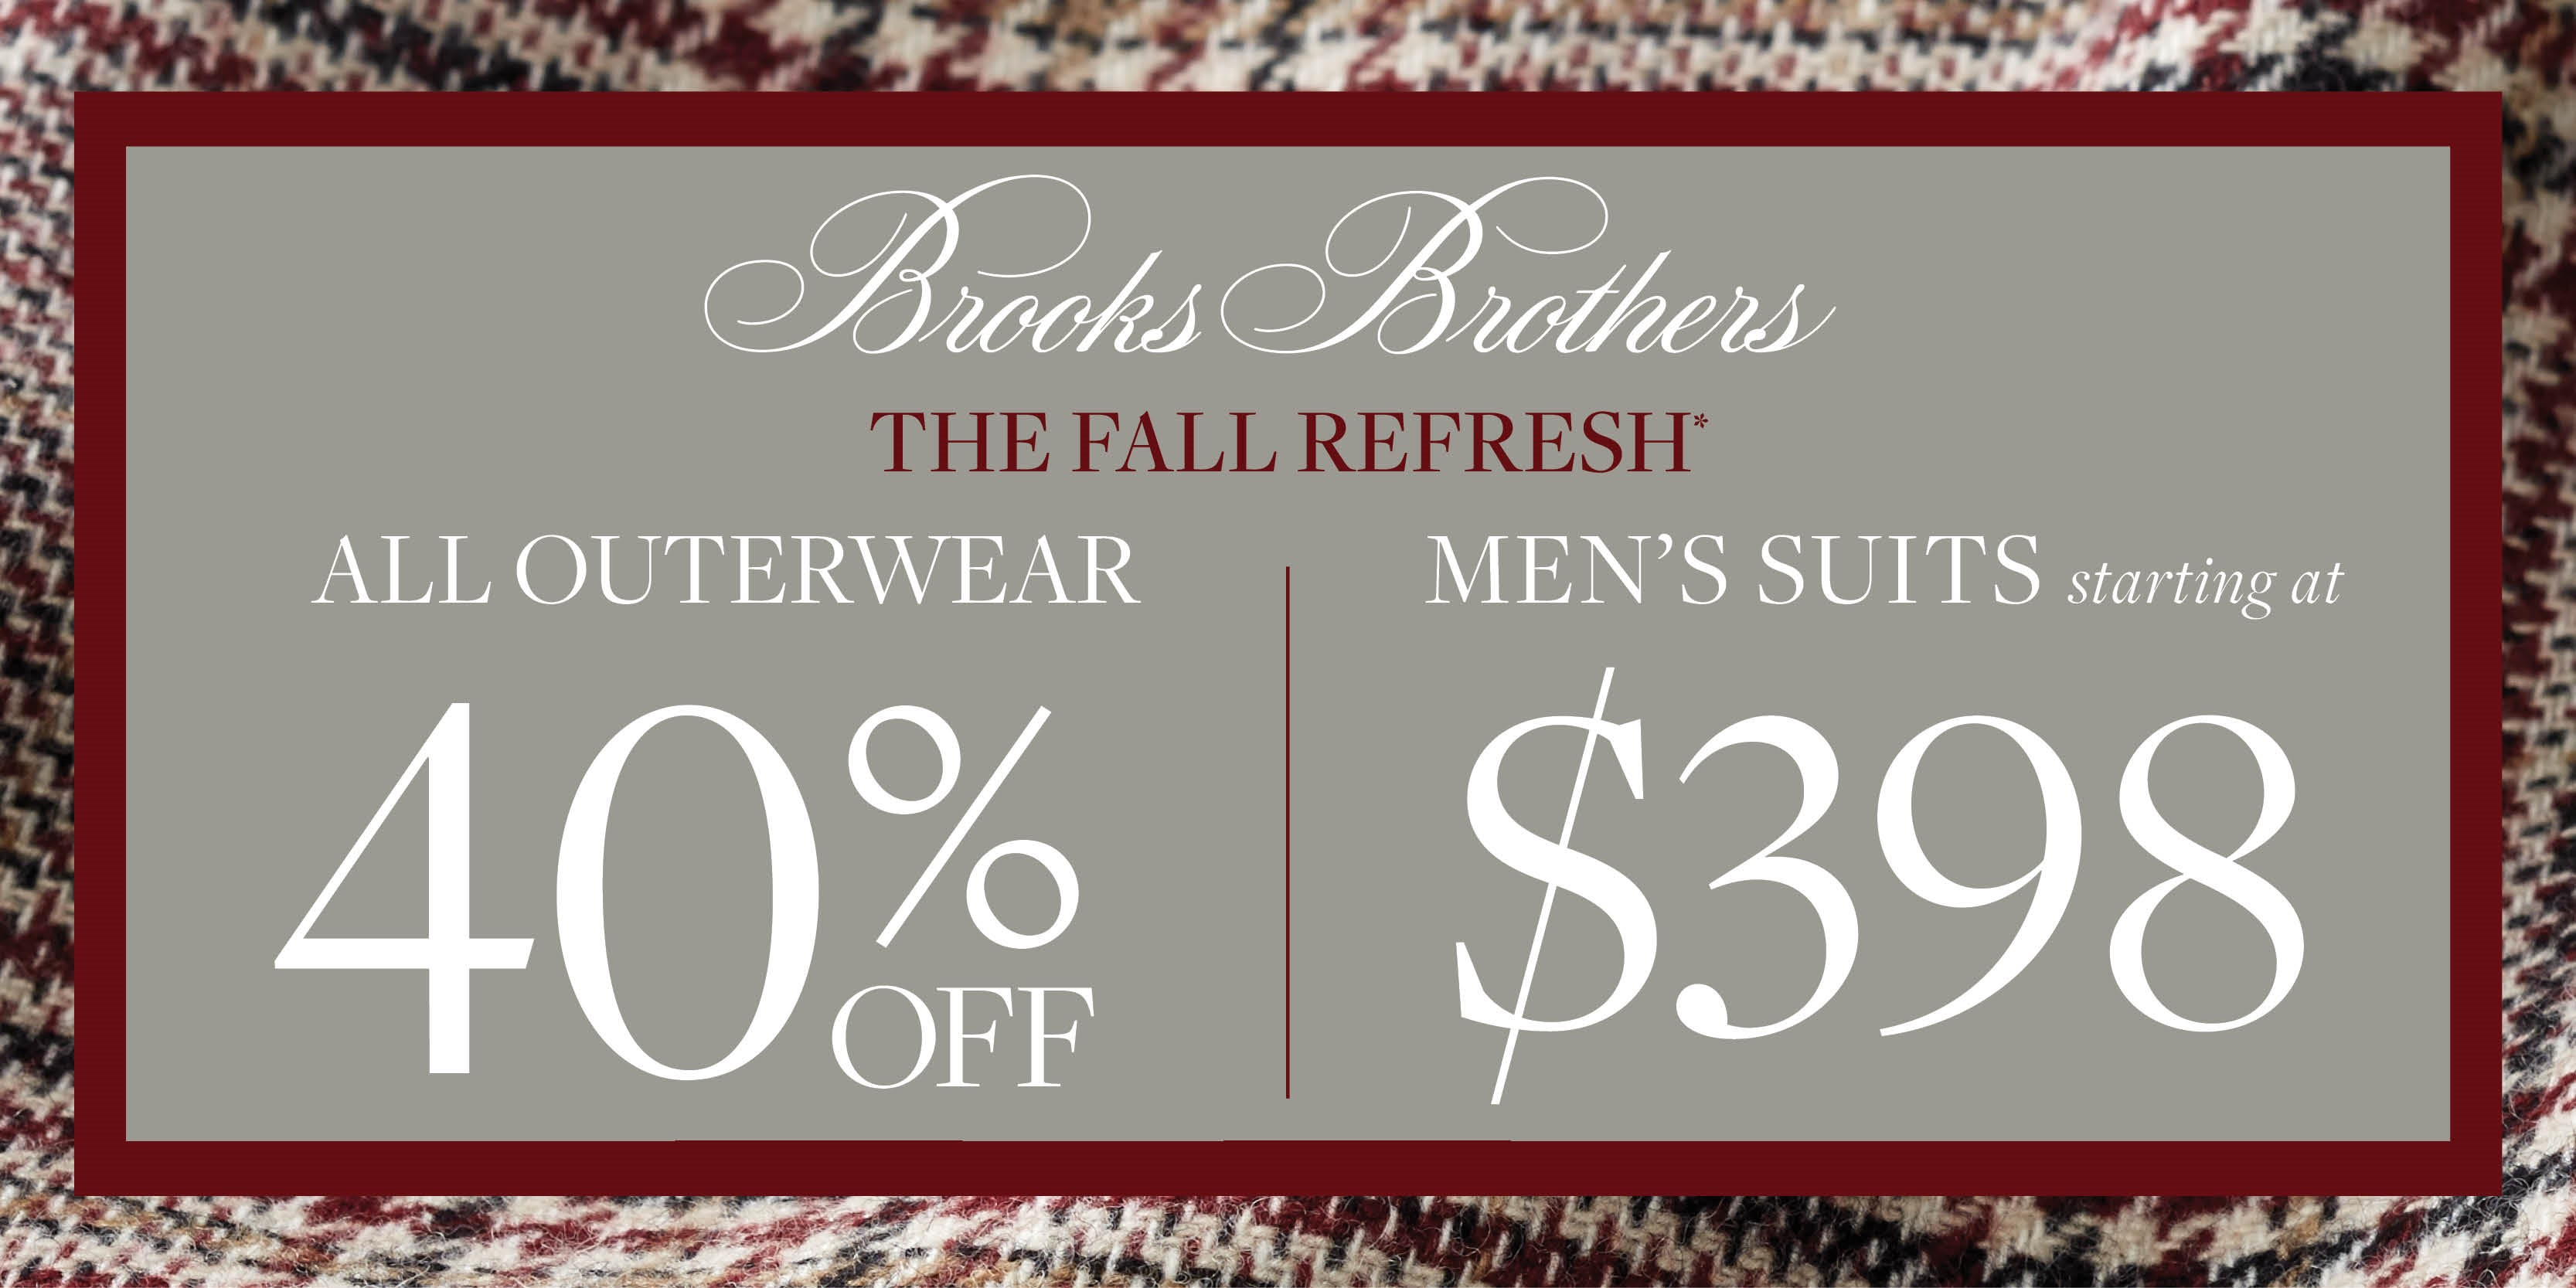 The Fall Refresh from Brooks Brothers